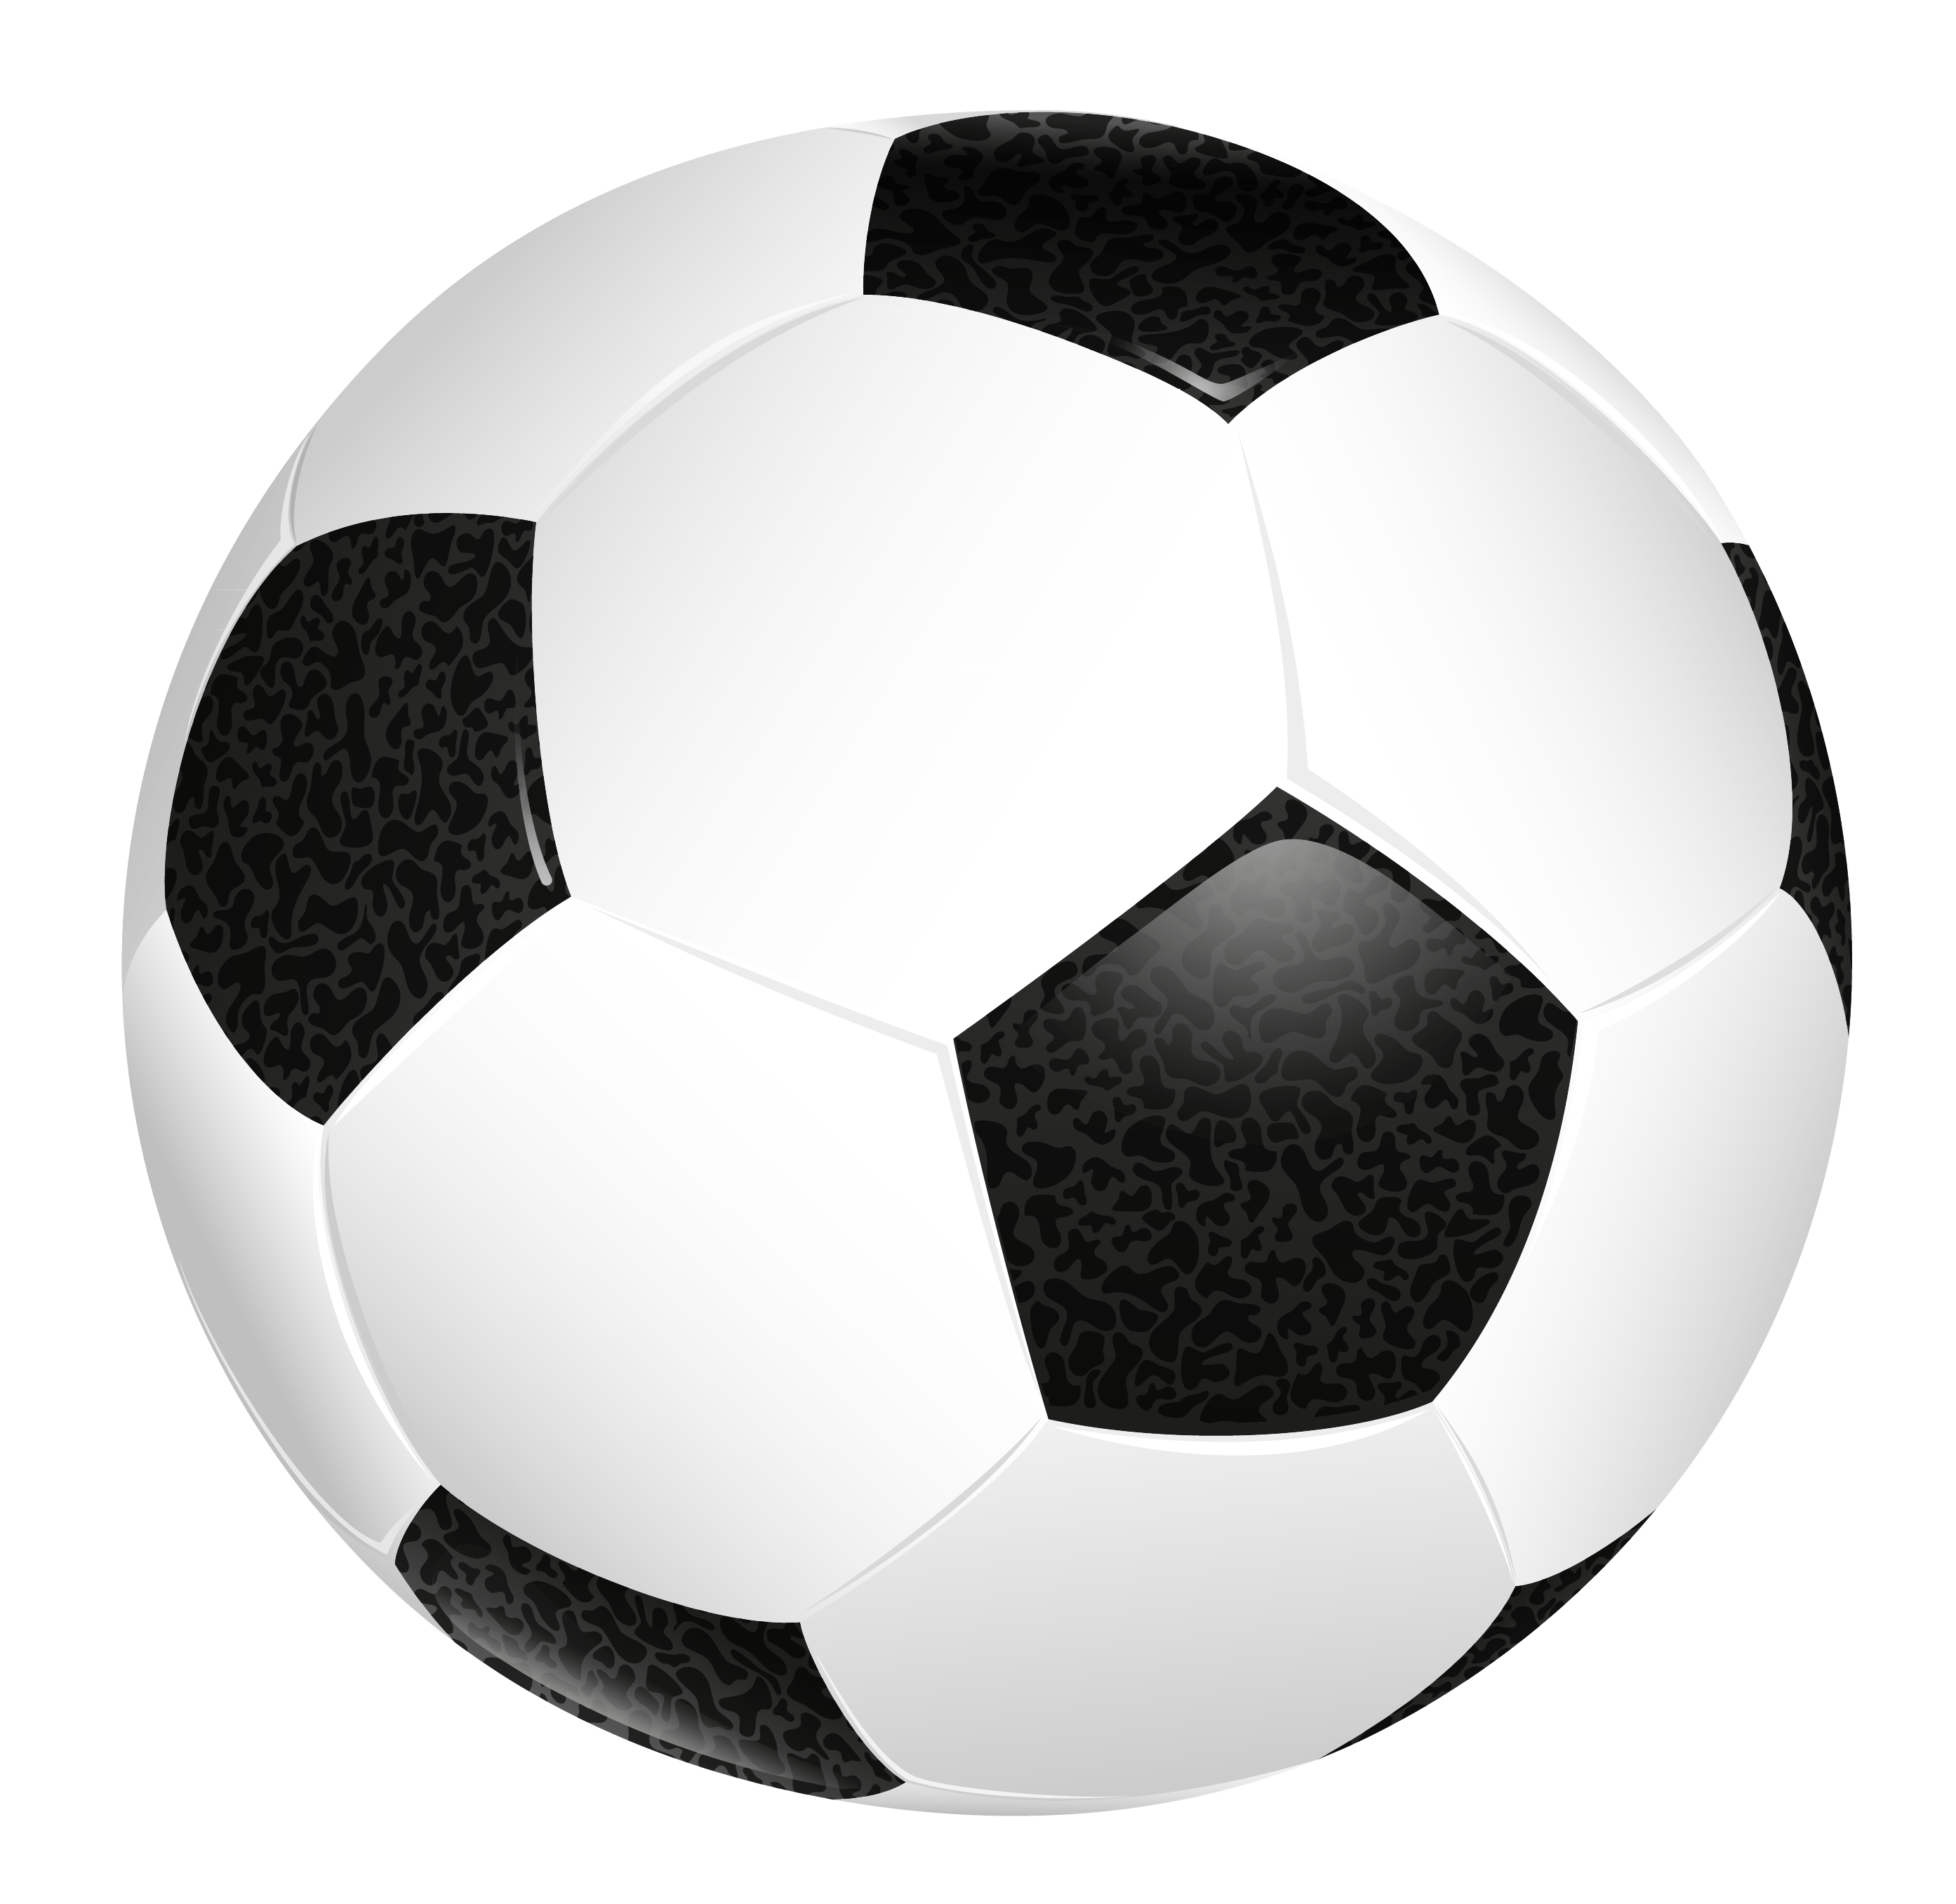 Soccer Ball Pictures - Cliparts.co